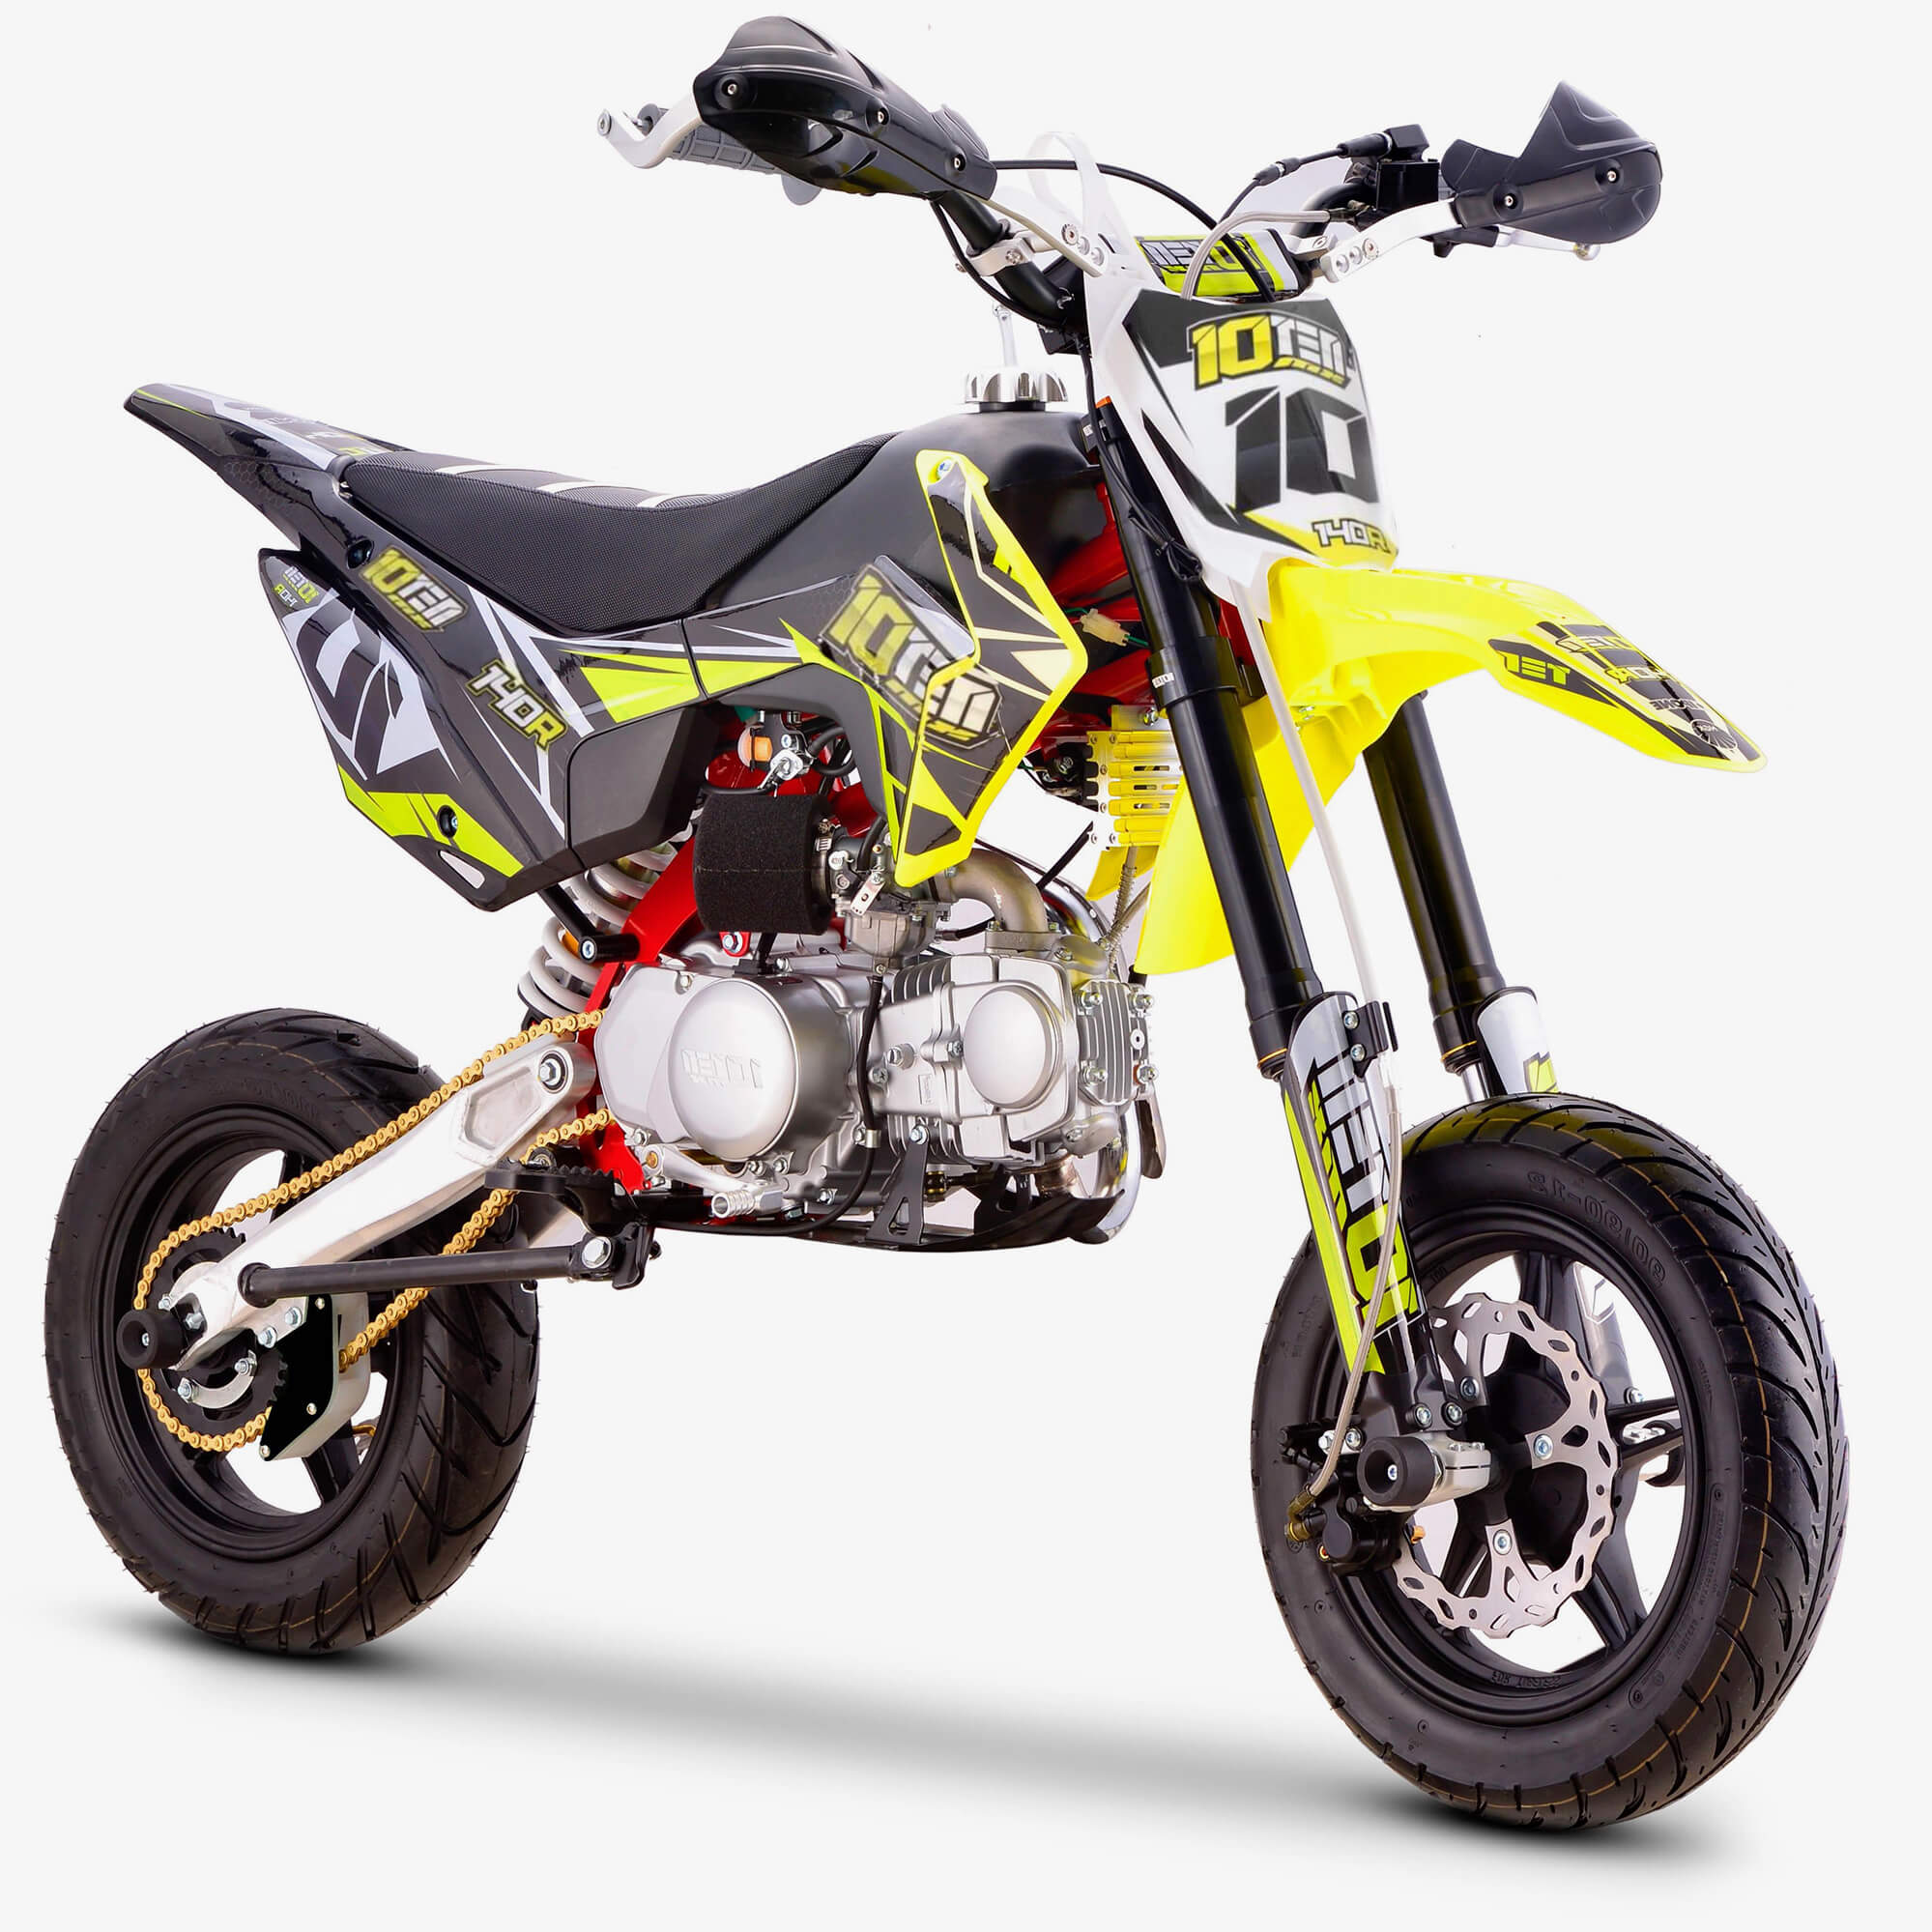 10TEn 10TEN 140R Supermoto Supermoto Bike